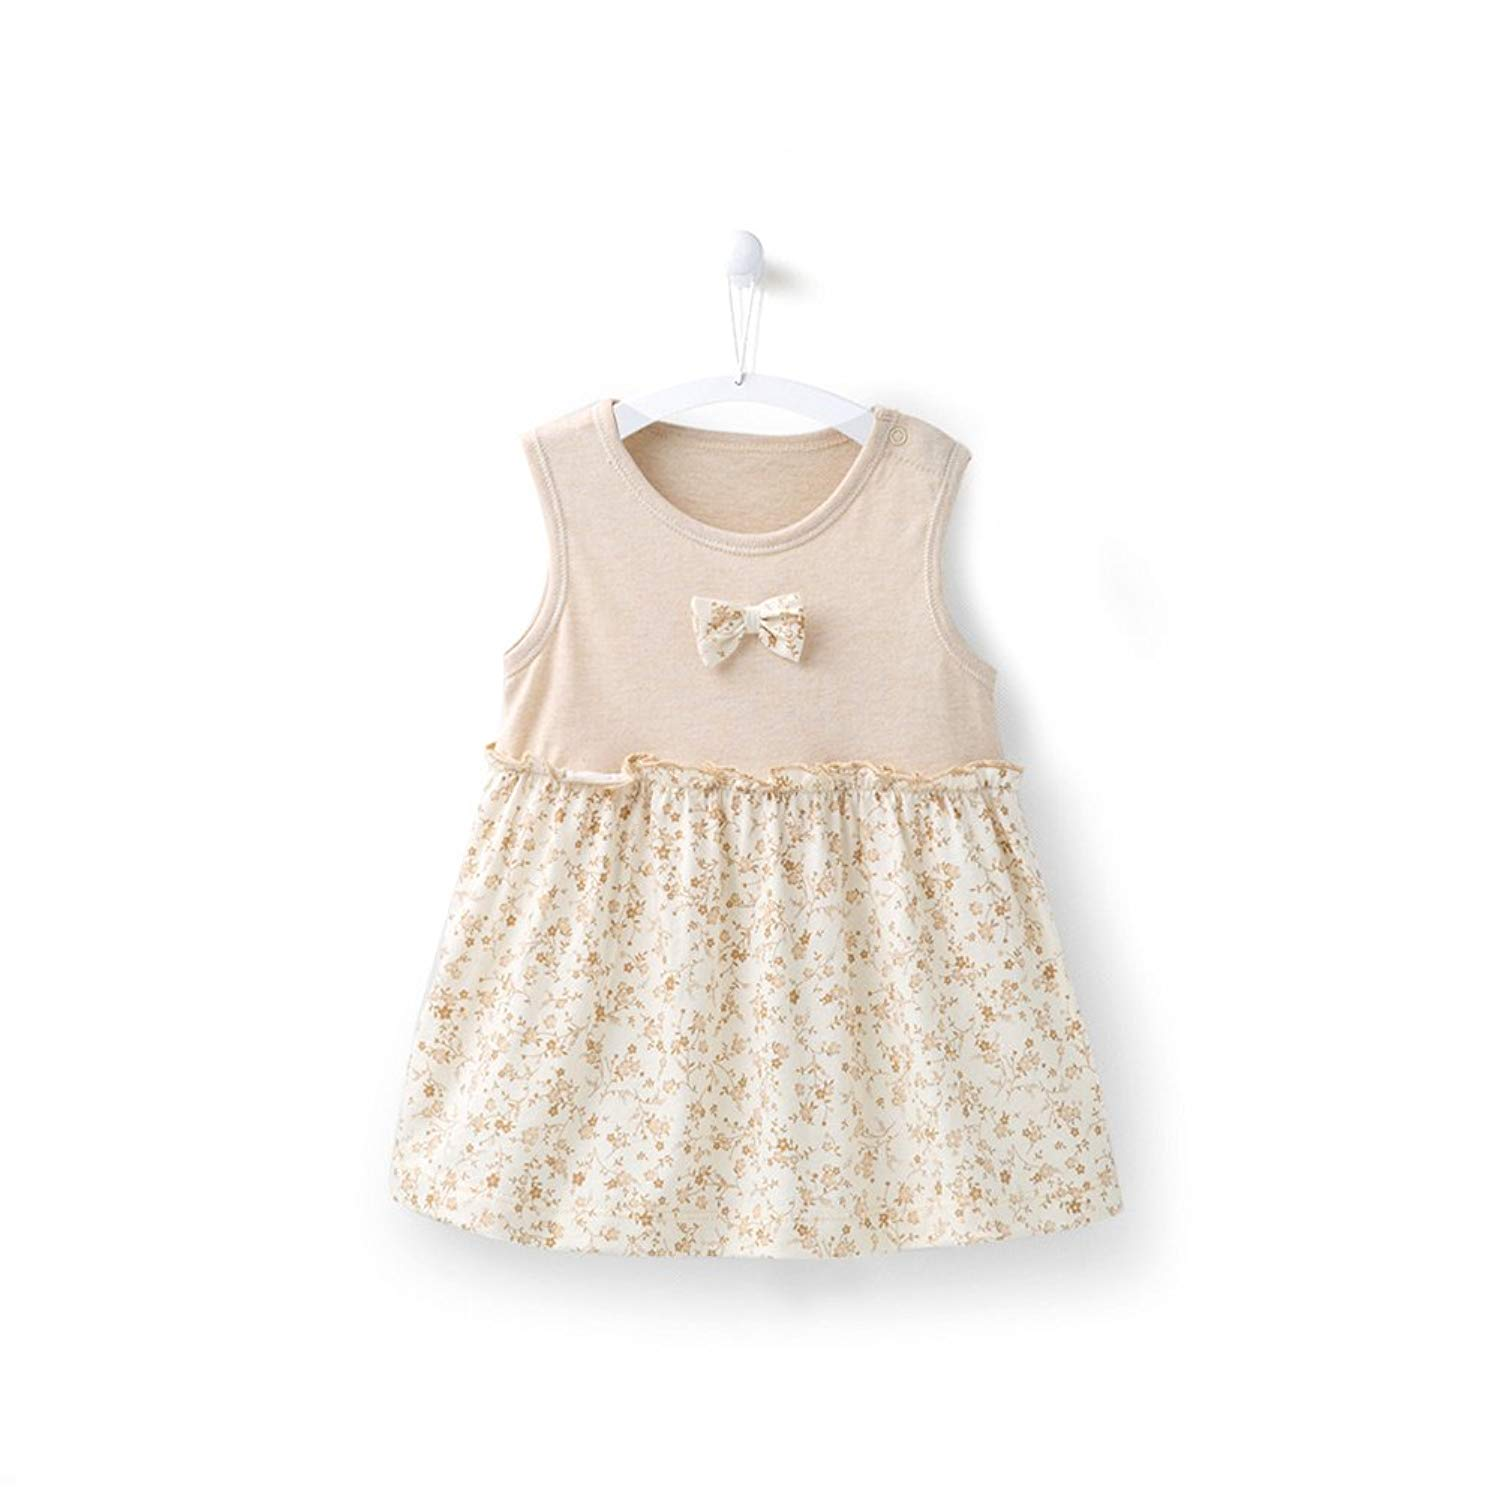 2ba9f354896d Get Quotations · COBROO Baby Girl Cotton Sleeveless Princess Dress Gift  with Bowtie Floral Dress Set with Briefs for